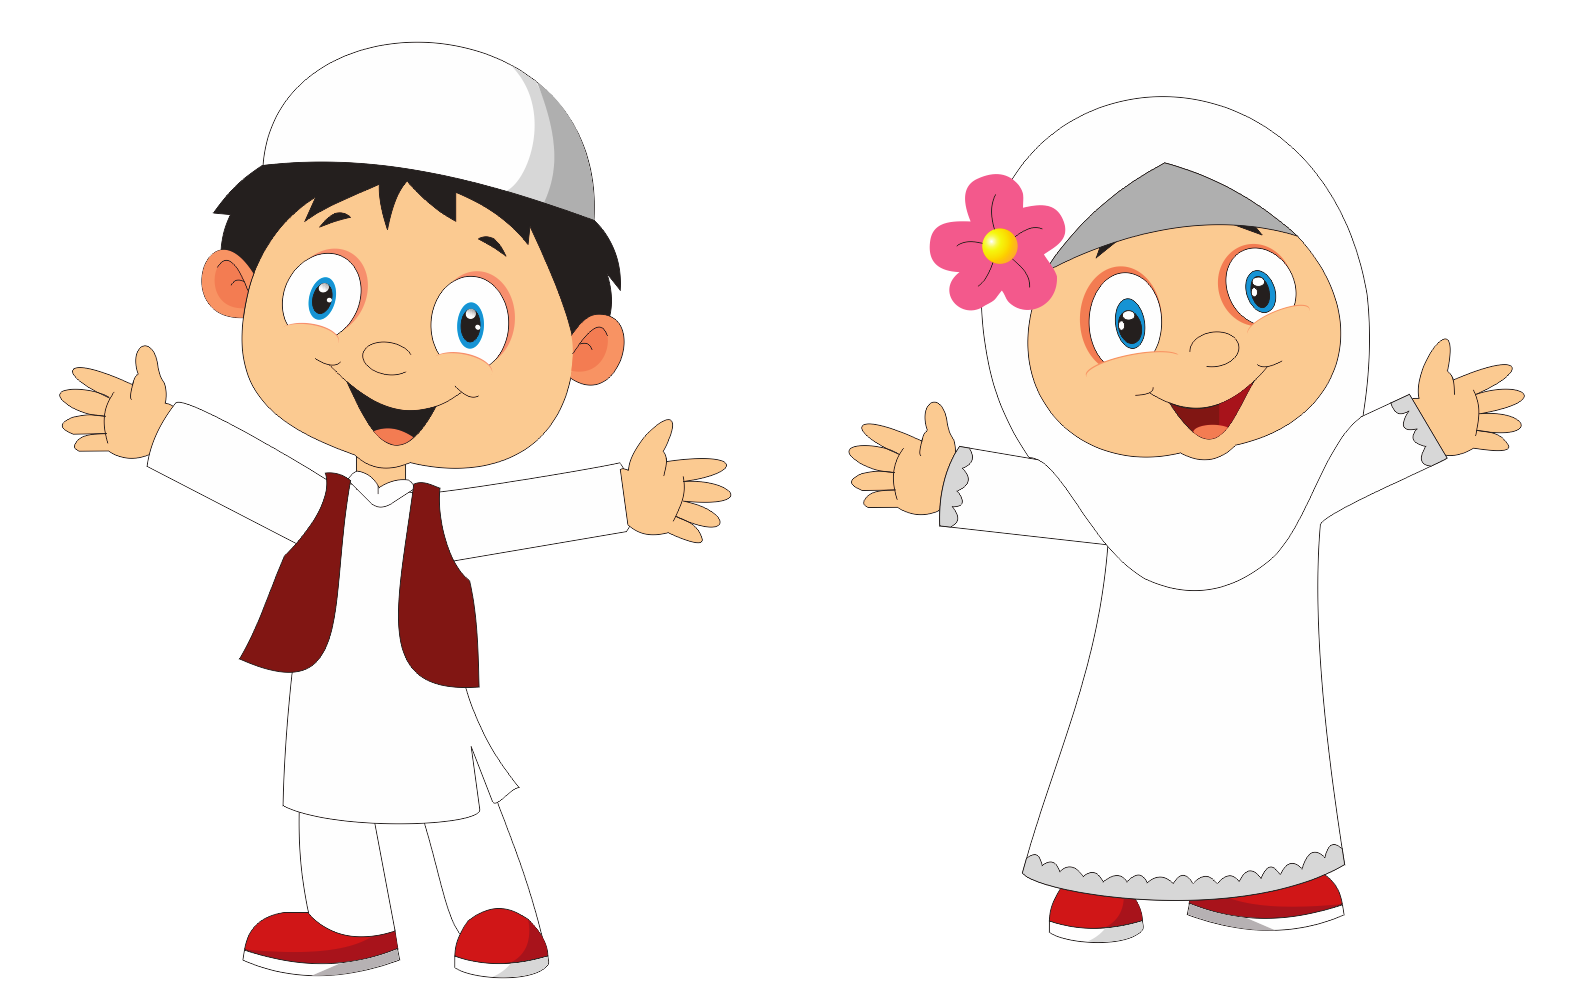 20 Gambar Kartun Anak Muslim Hd Gambar Kartun In 2020 Islamic Cartoon Muslim Kids Cartoon Kids